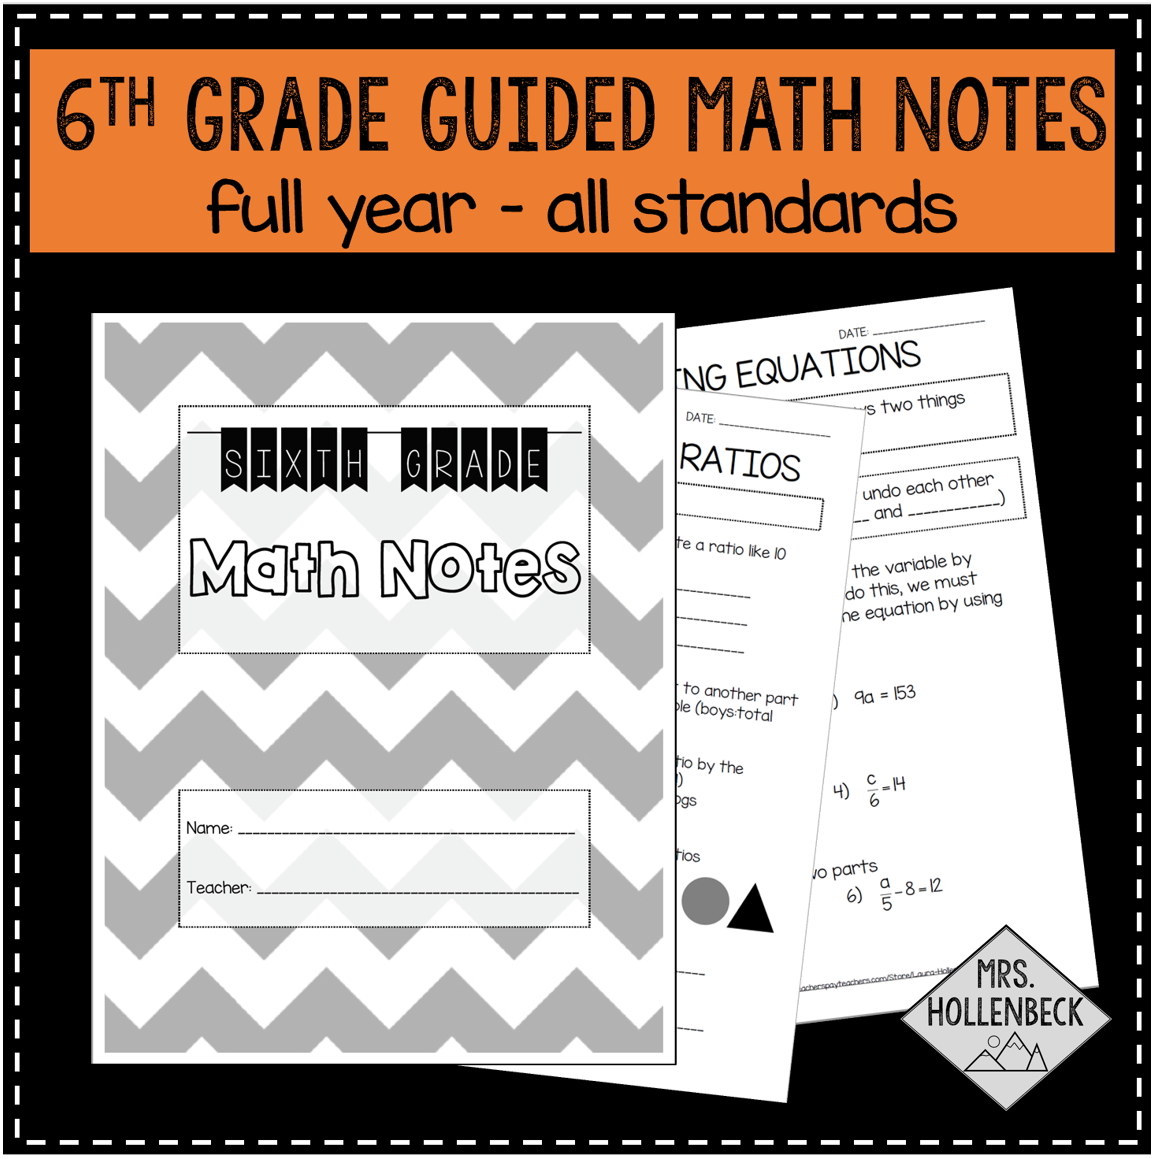 6th Grade Guided Math Notes